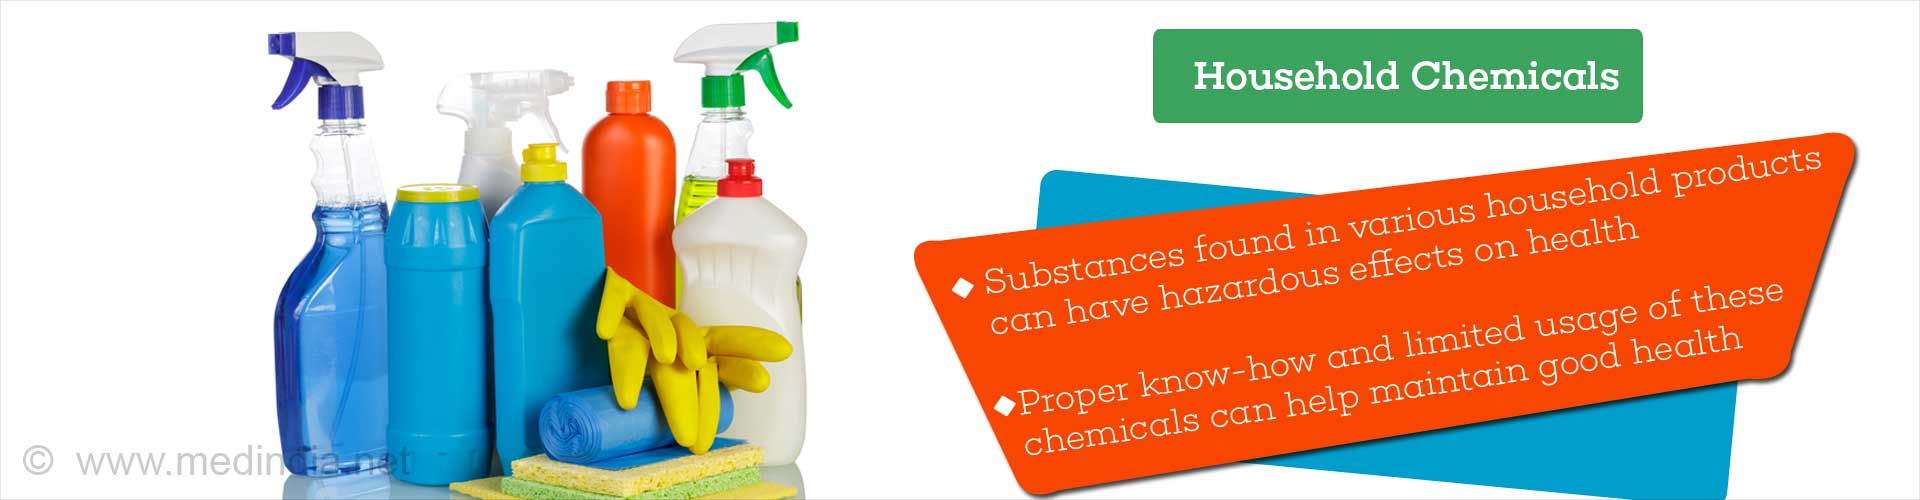 Household Chemicals - Substances in various household products can have effects on health - Proper know-how and limited usage of these chemicals can help maintain good health